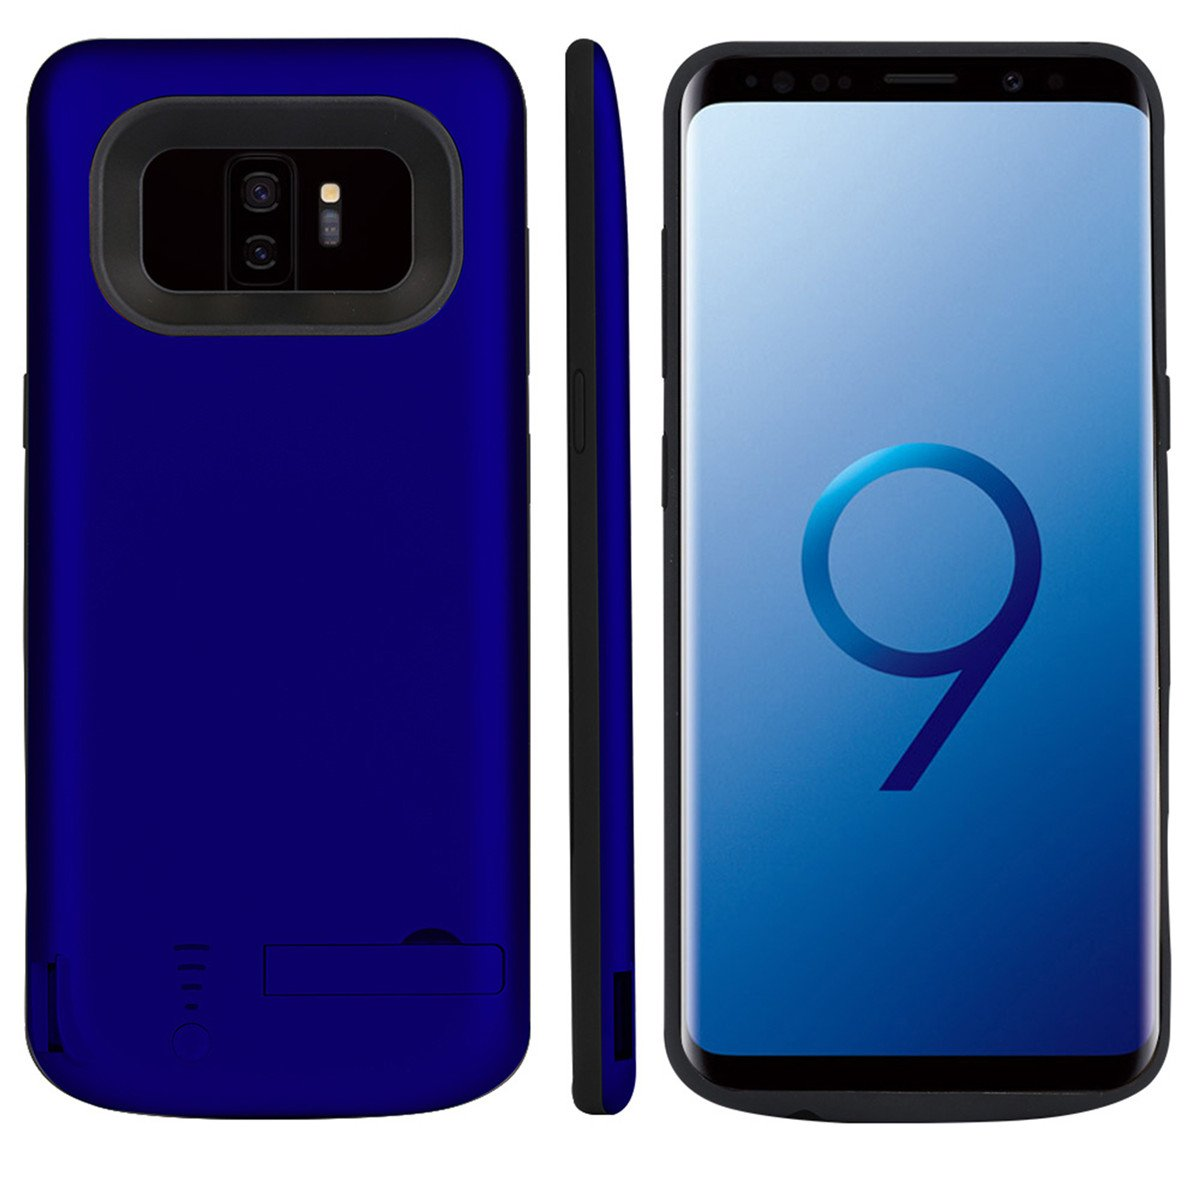 Scheam Samsung Galaxy S9 Plus Battery Case, Slim Portable Charger Samsung Galaxy S9 Plus Protective Shell Charging Case Extended Battery Power Cases Juice Bank Cover